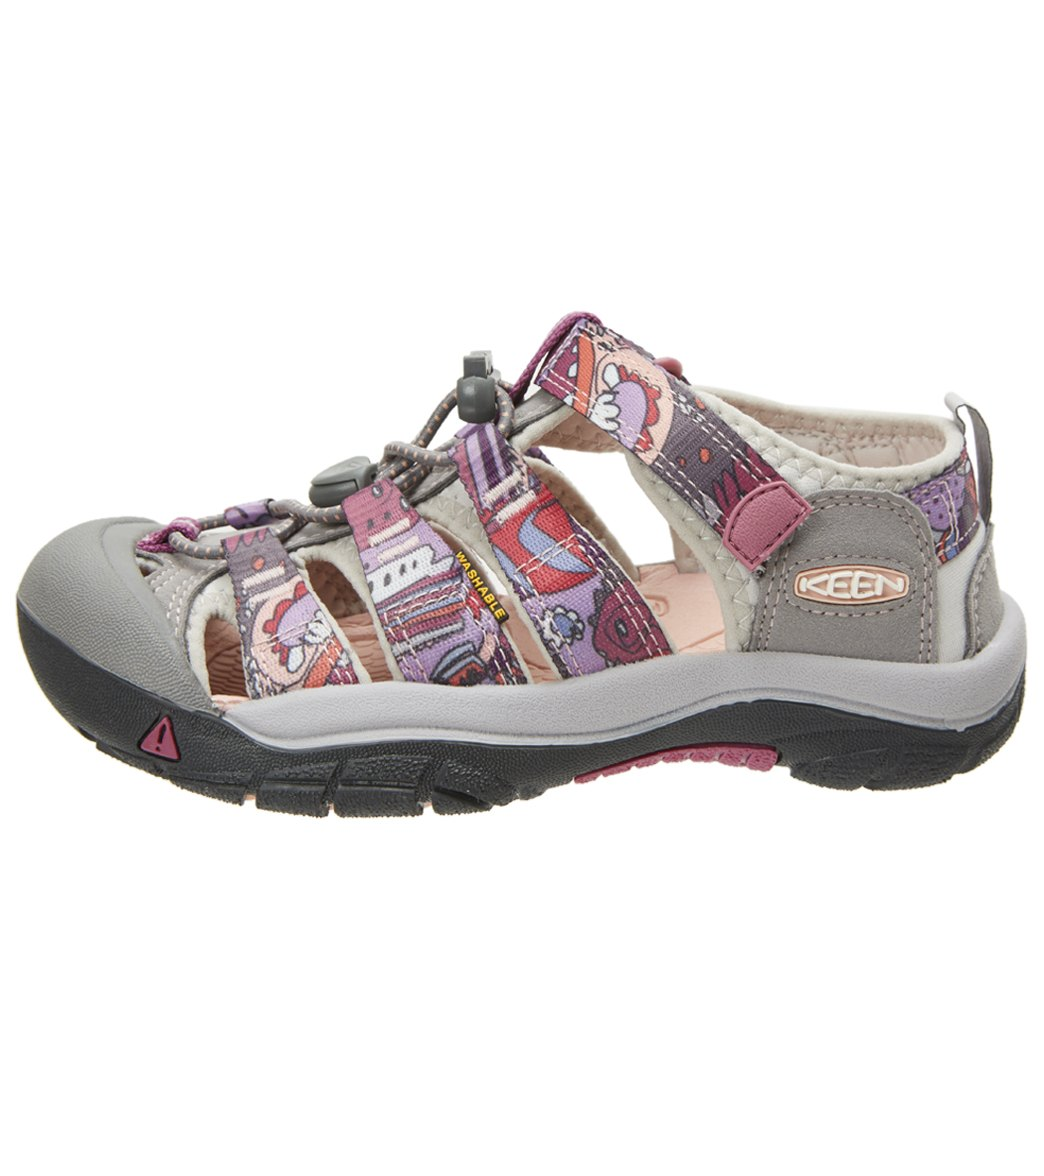 a1399a9f2074 Keen Youth s Newport H2 Water Shoes at SwimOutlet.com - Free Shipping